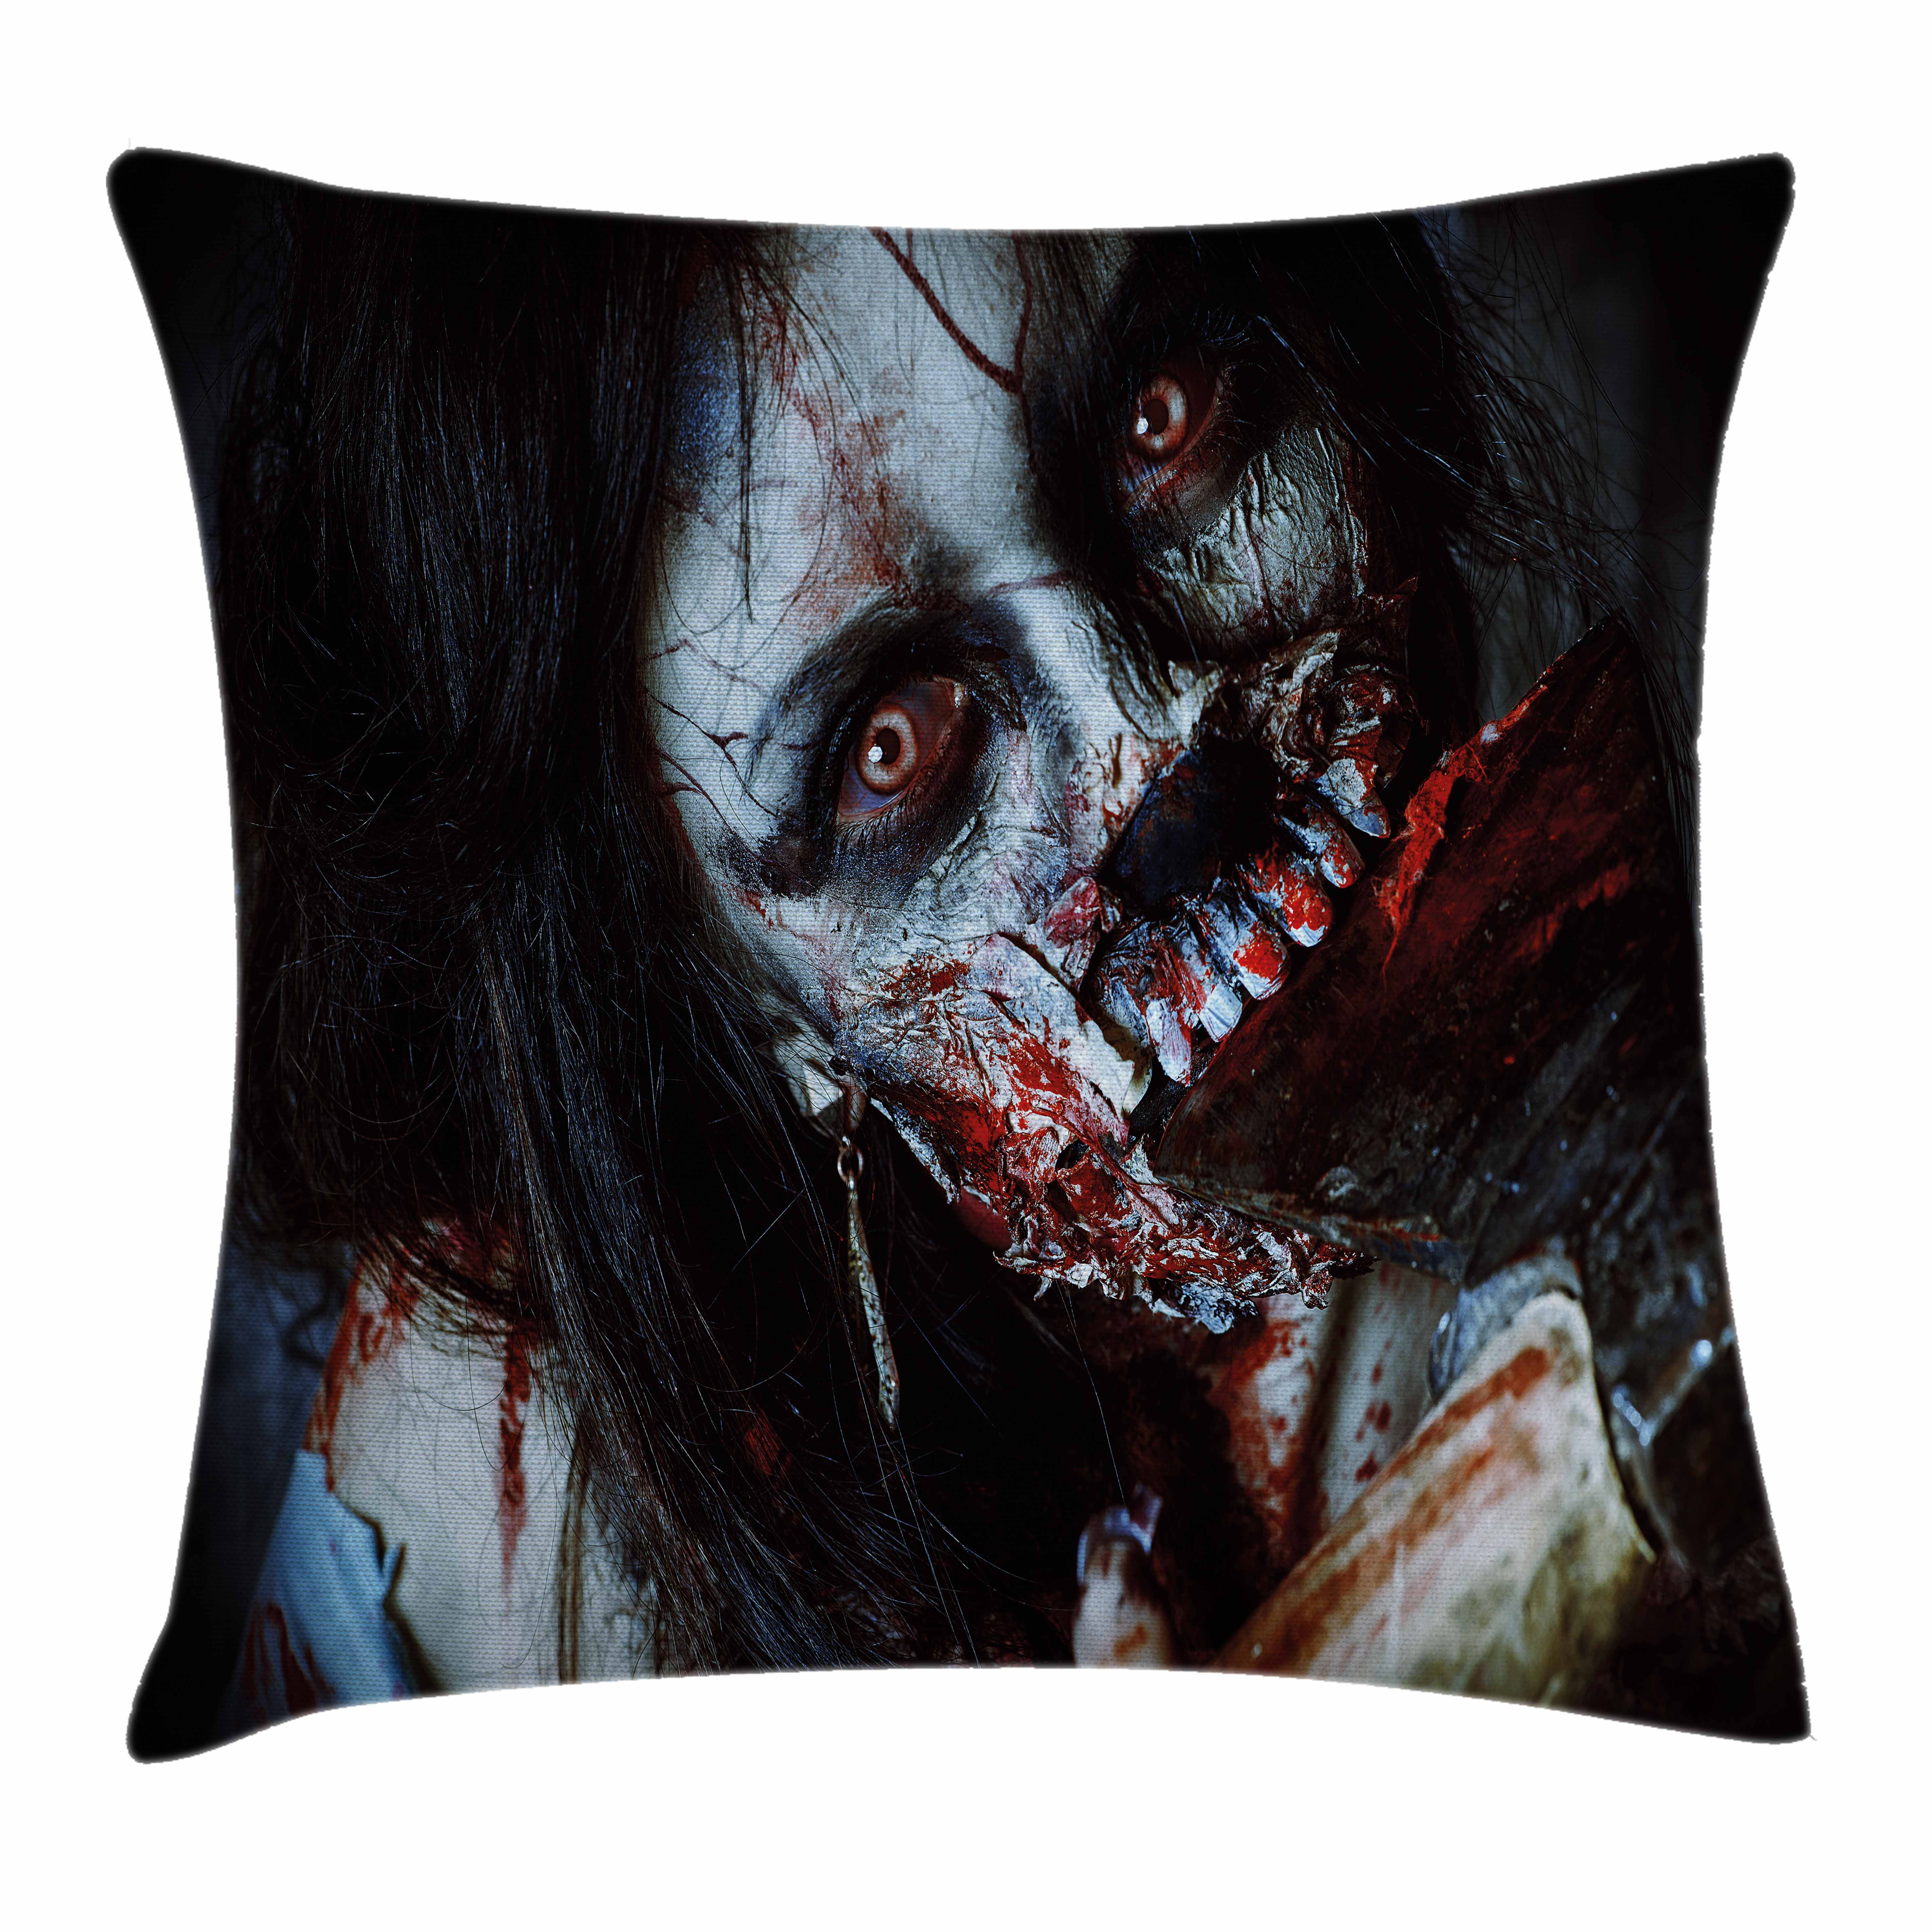 Zombie Decor Throw Pillow Cushion Cover, Scary Dead Woman with Bloody Axe Evil Fantasy Gothic Mystery Halloween Picture, Decorative Square Accent Pillow Case, 16 X 16 Inches, Multicolor, by Ambesonne